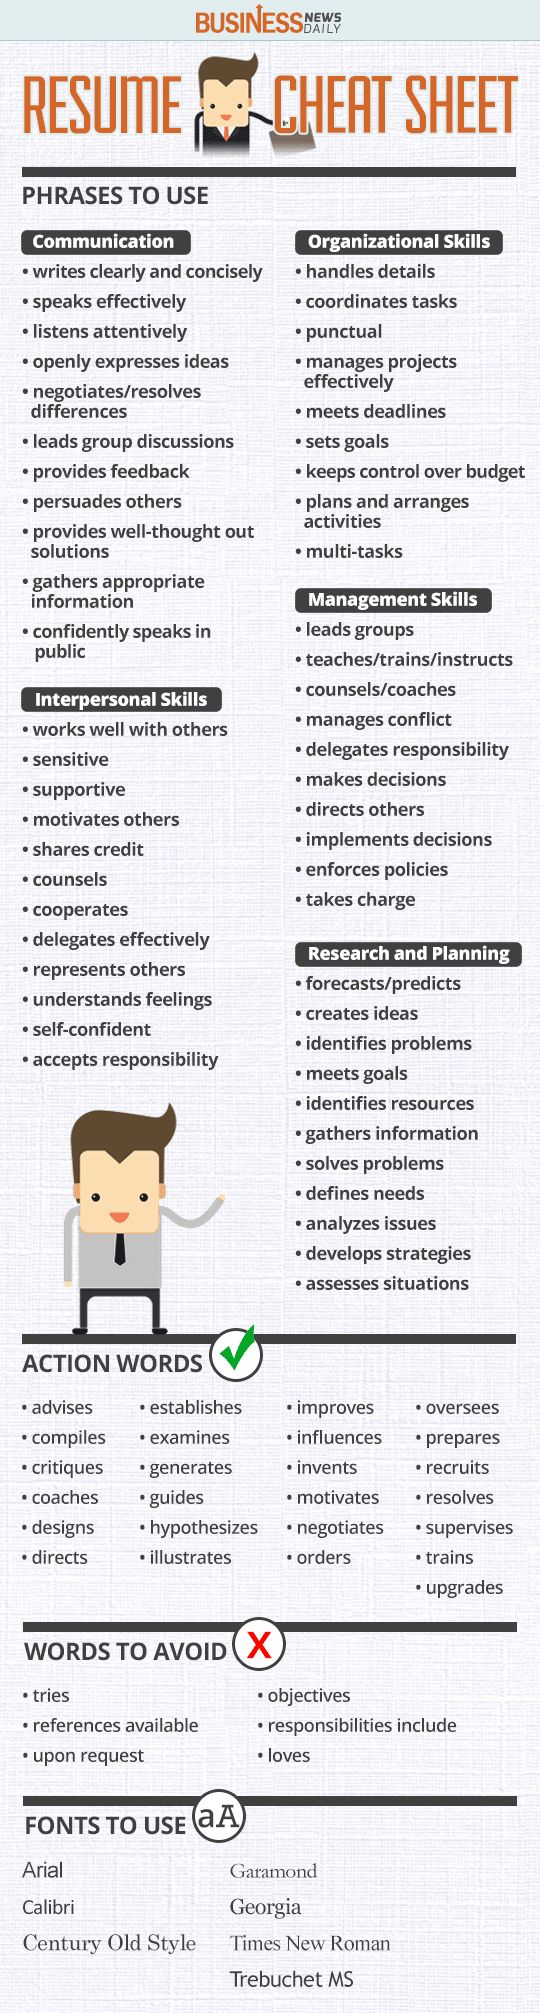 these are important words to use in a resume as well as interview